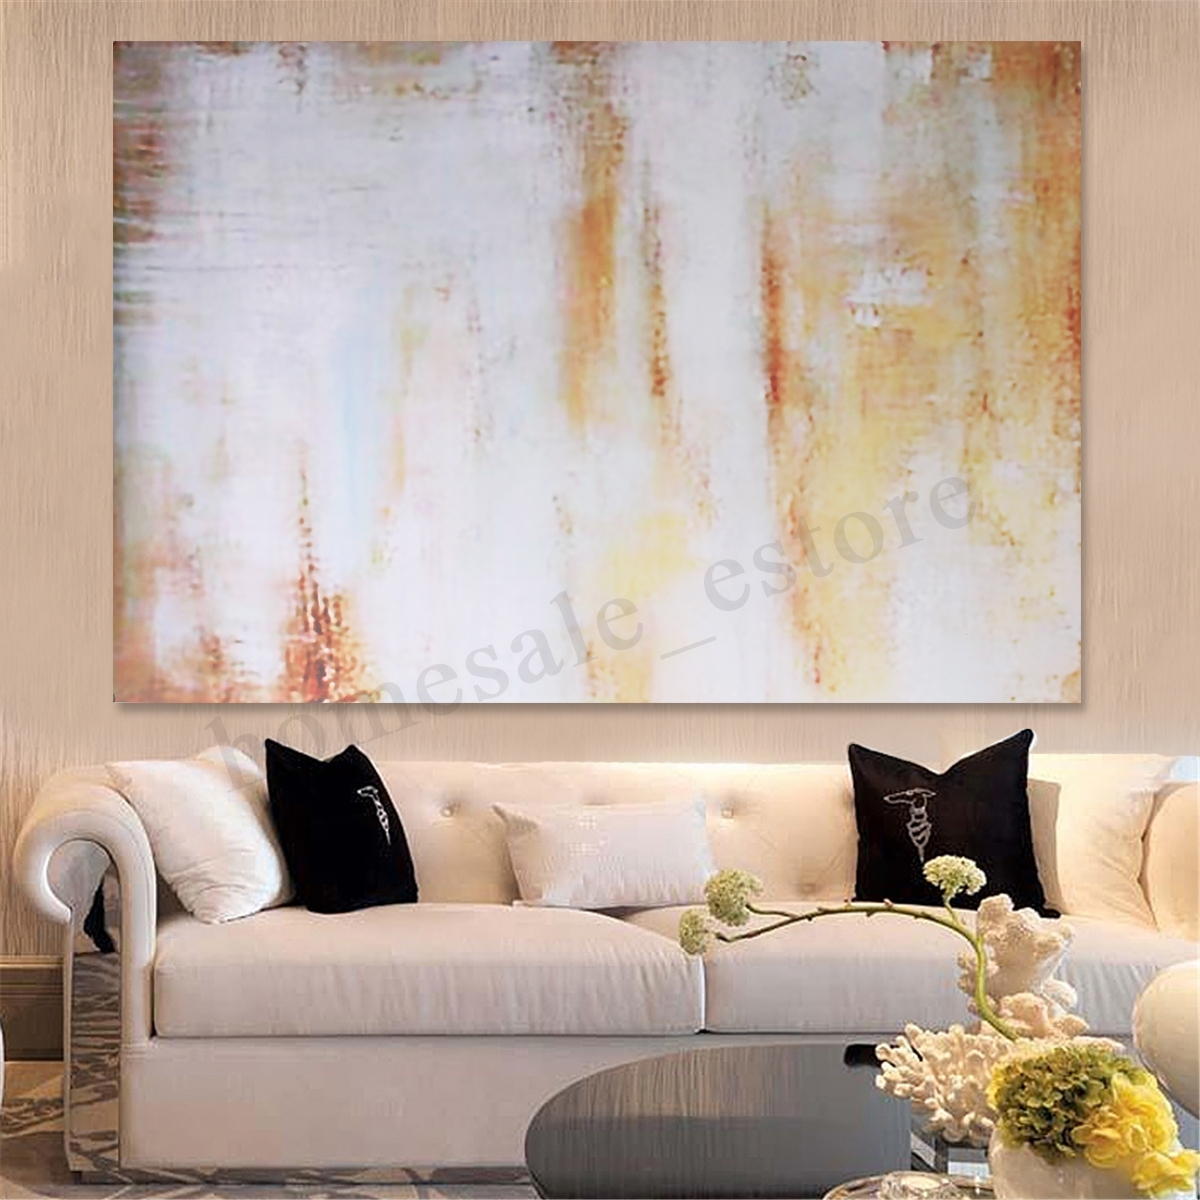 Unframed/framed Modern Canvas Oil Painting Print Picture Wall Art Within Most Recently Released Modern Framed Wall Art Canvas (View 16 of 20)